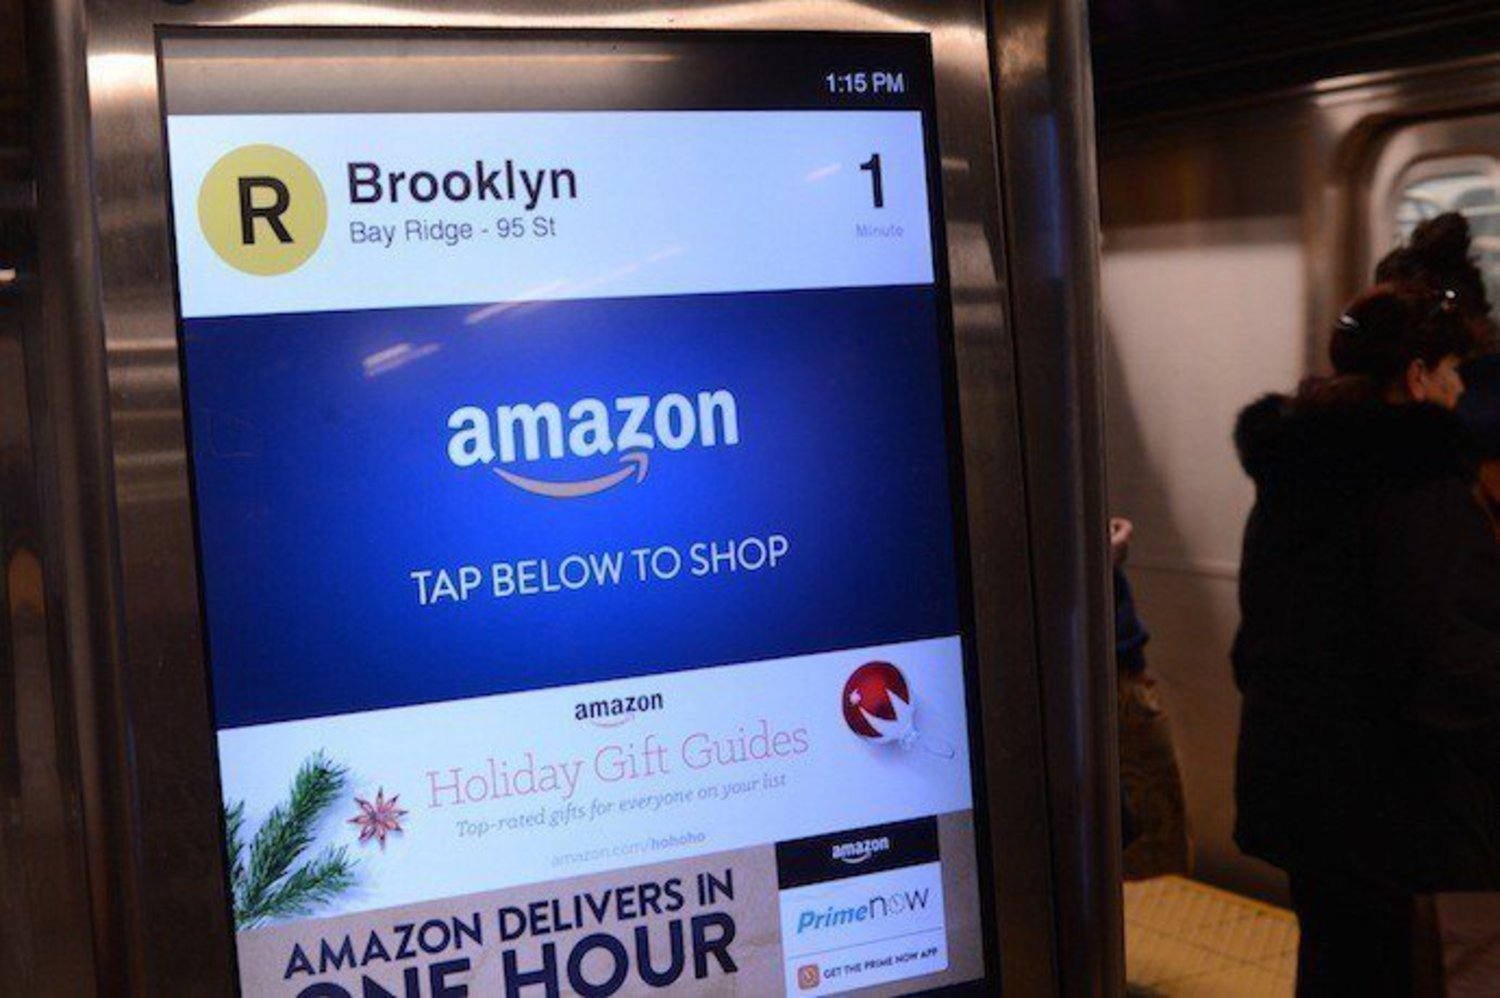 The Amazon Holiday Gift Guide on On The Go Kiosks